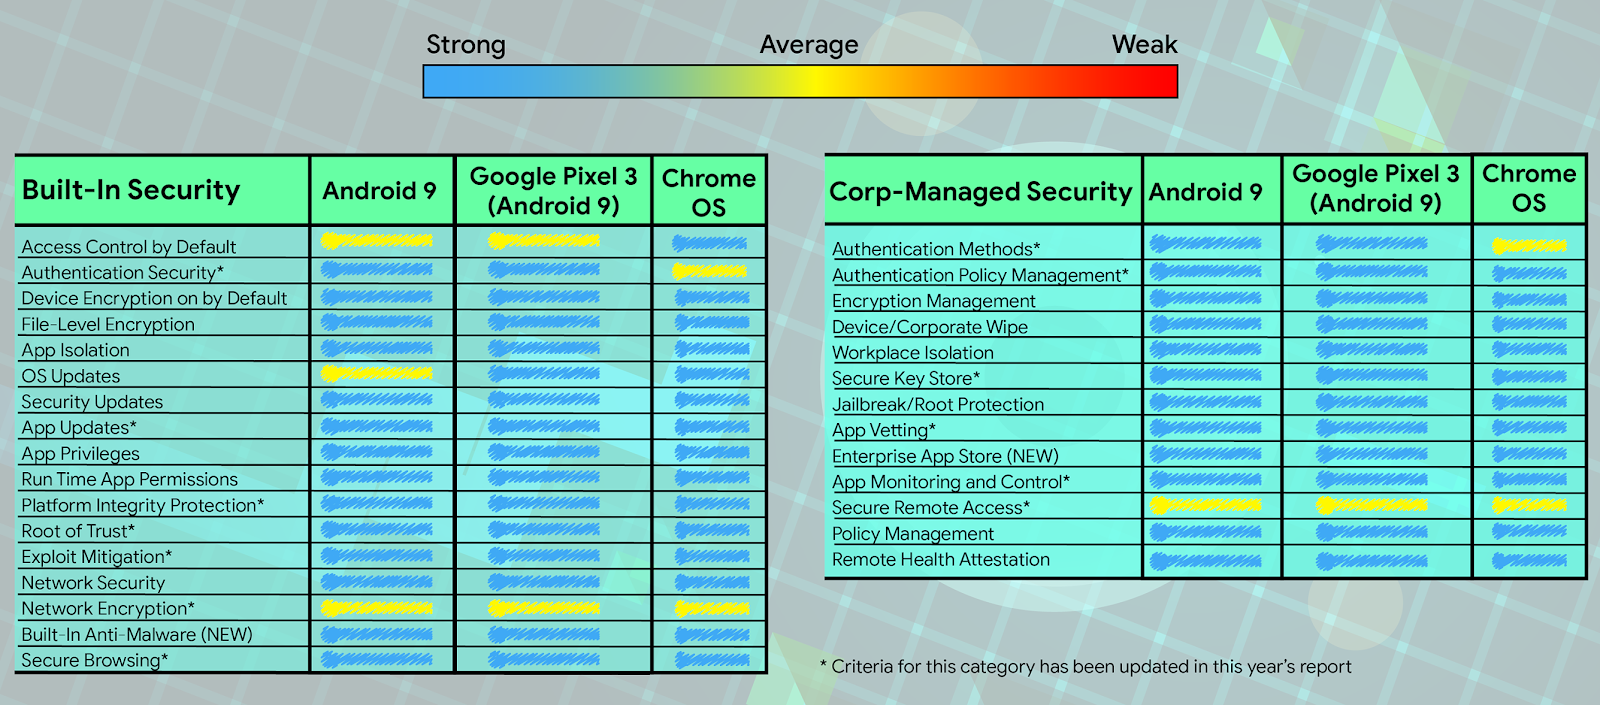 Google Online Security Blog: Quantifying Measurable Security